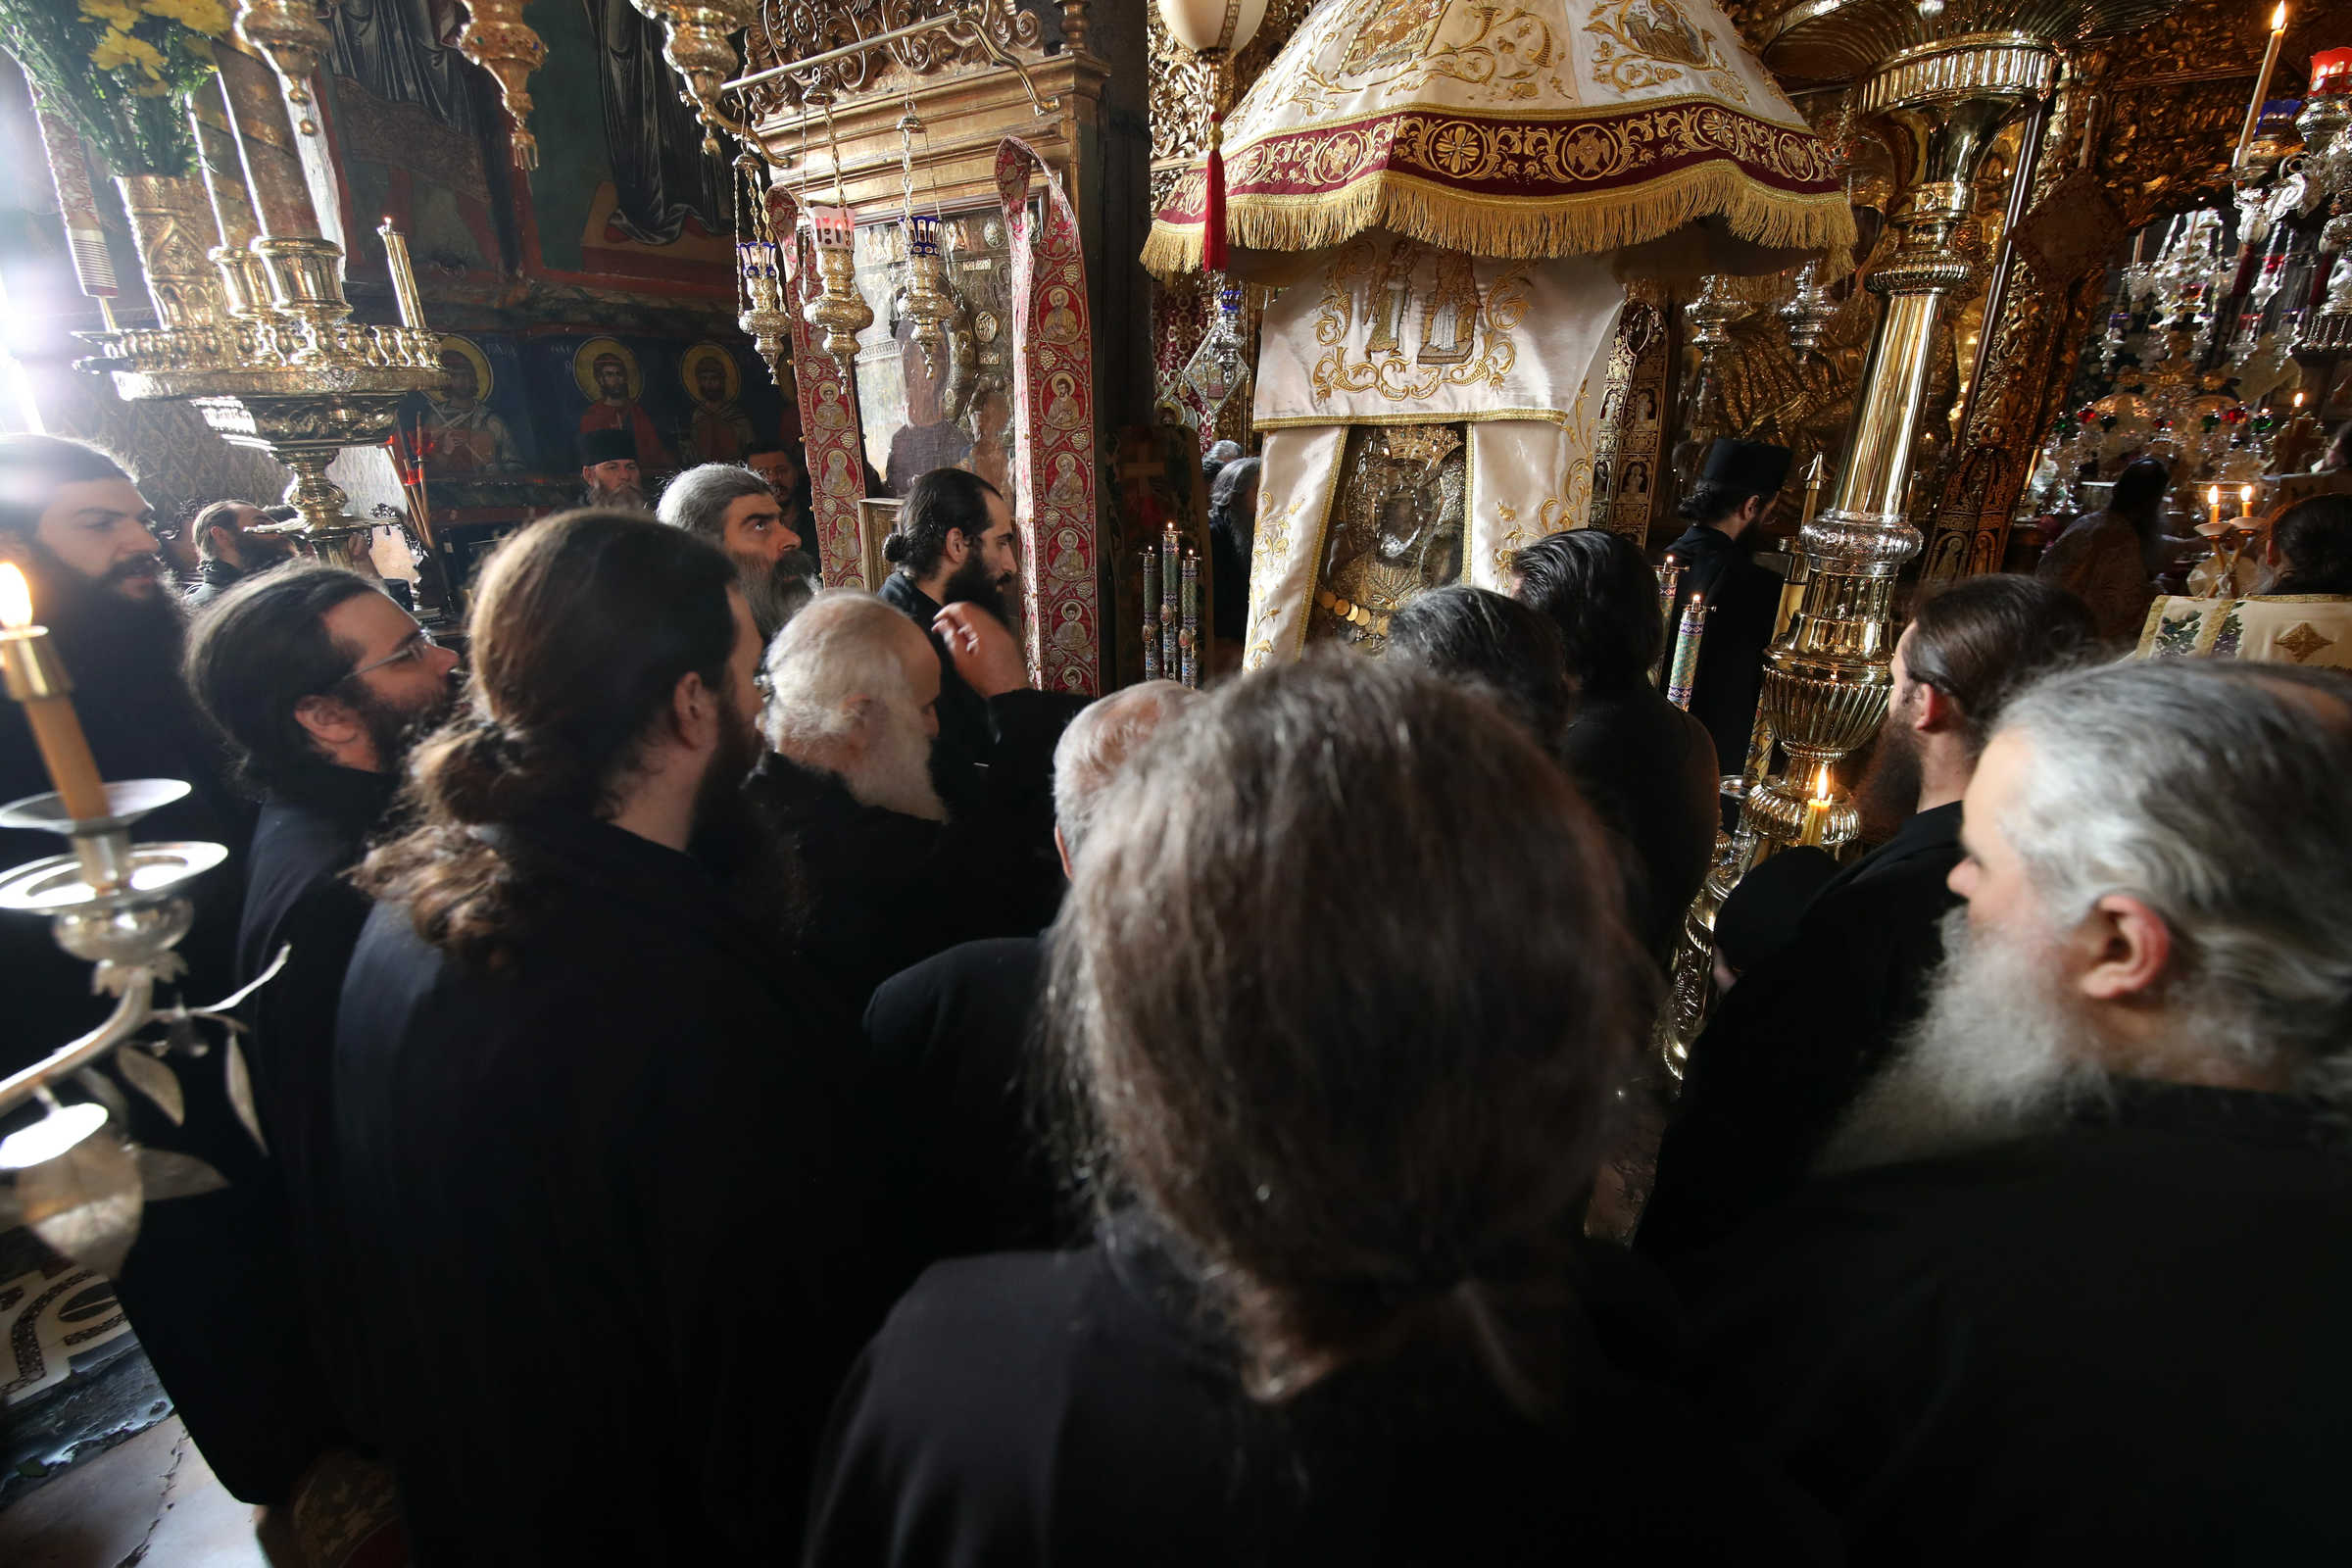 The silence of the children - Photo journal from Announciation (Great Saturday) - Part 2: The Liturgy